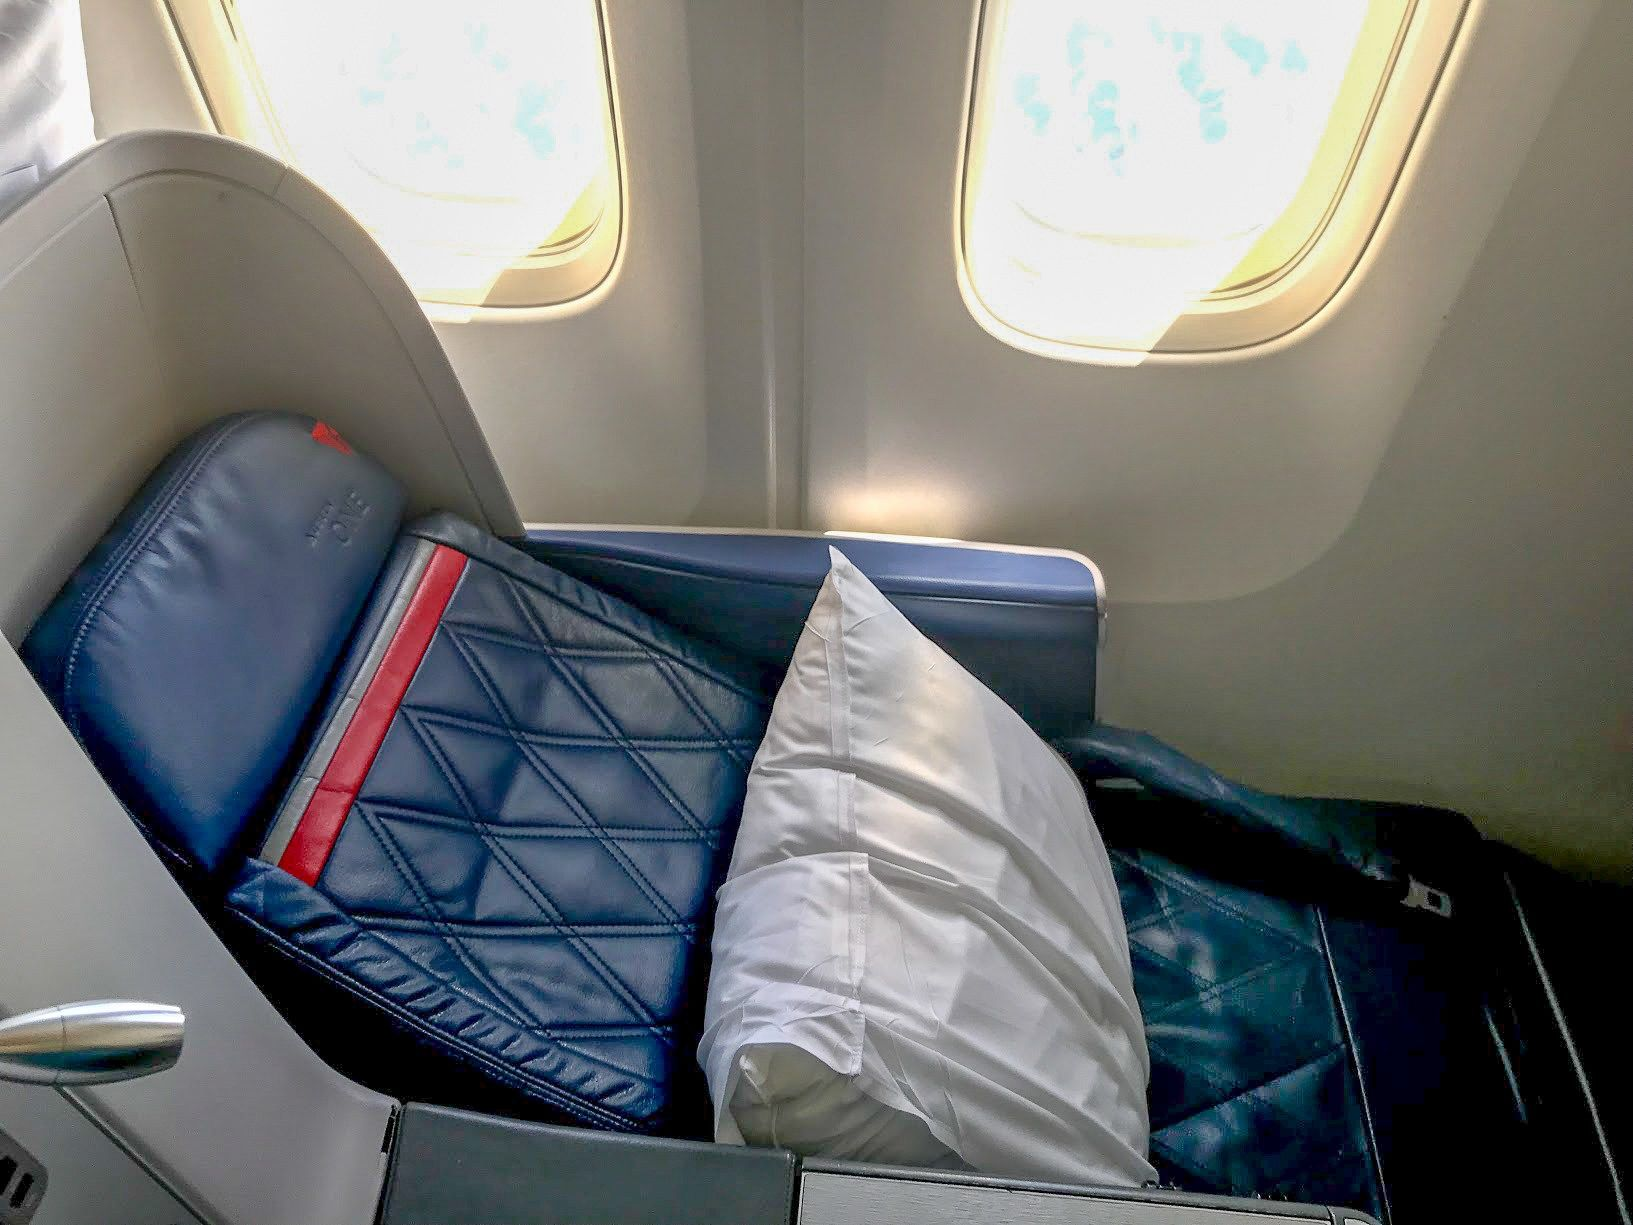 A review of delta 767300er delta one delta business